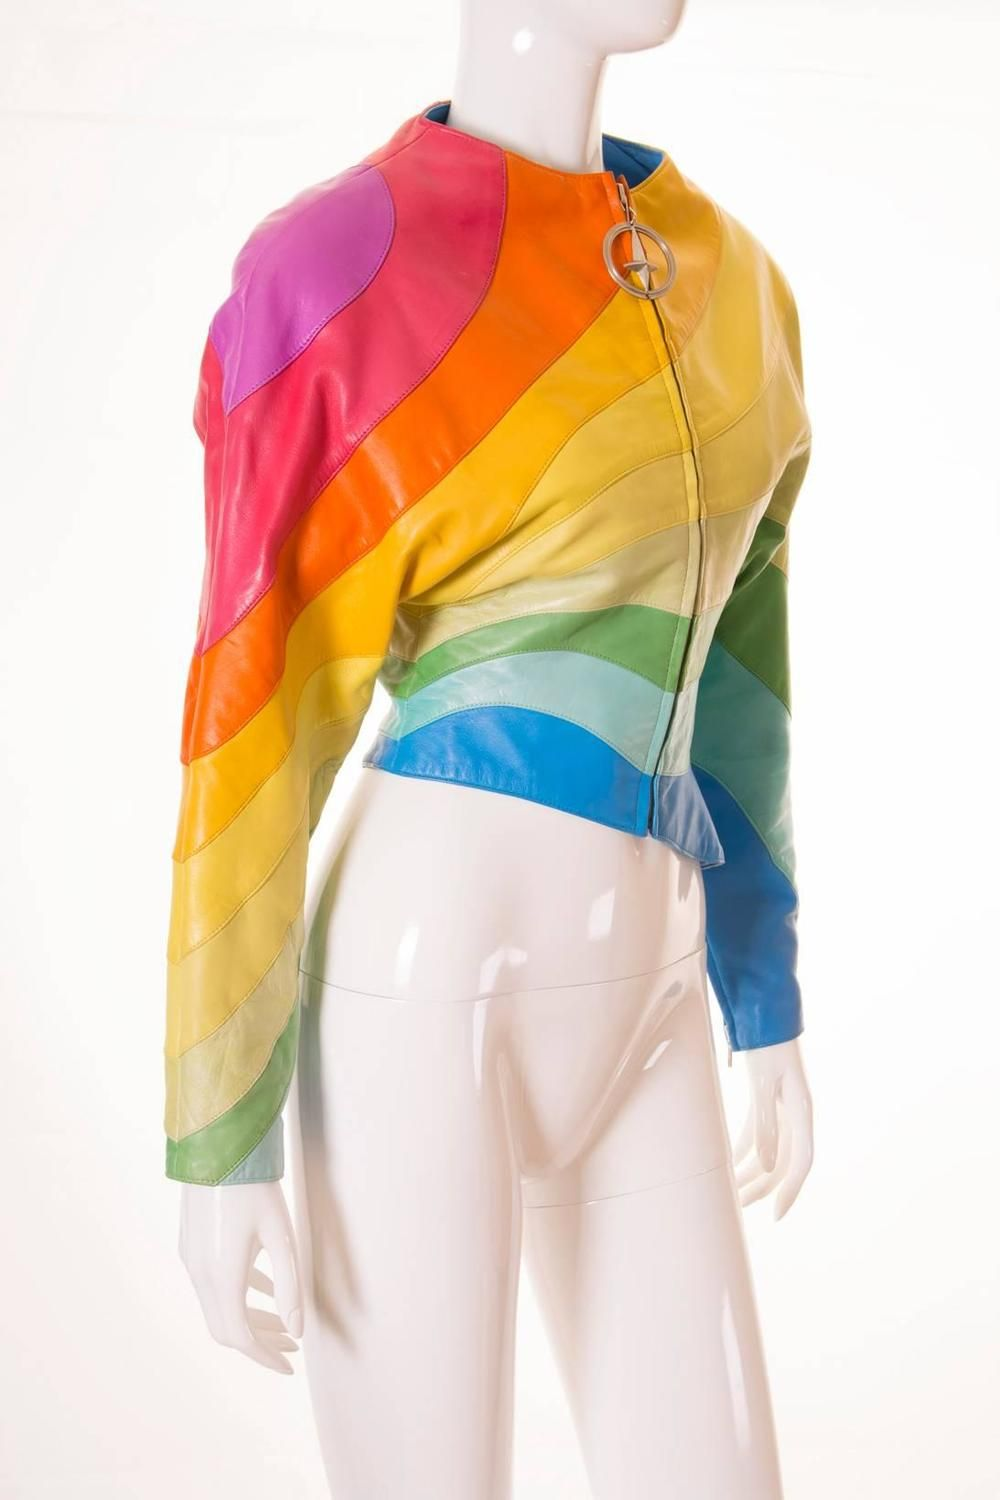 3803c06dba05 S/S 1990 Thierry Mugler Rainbow Leather Jacket | From a collection of rare  vintage